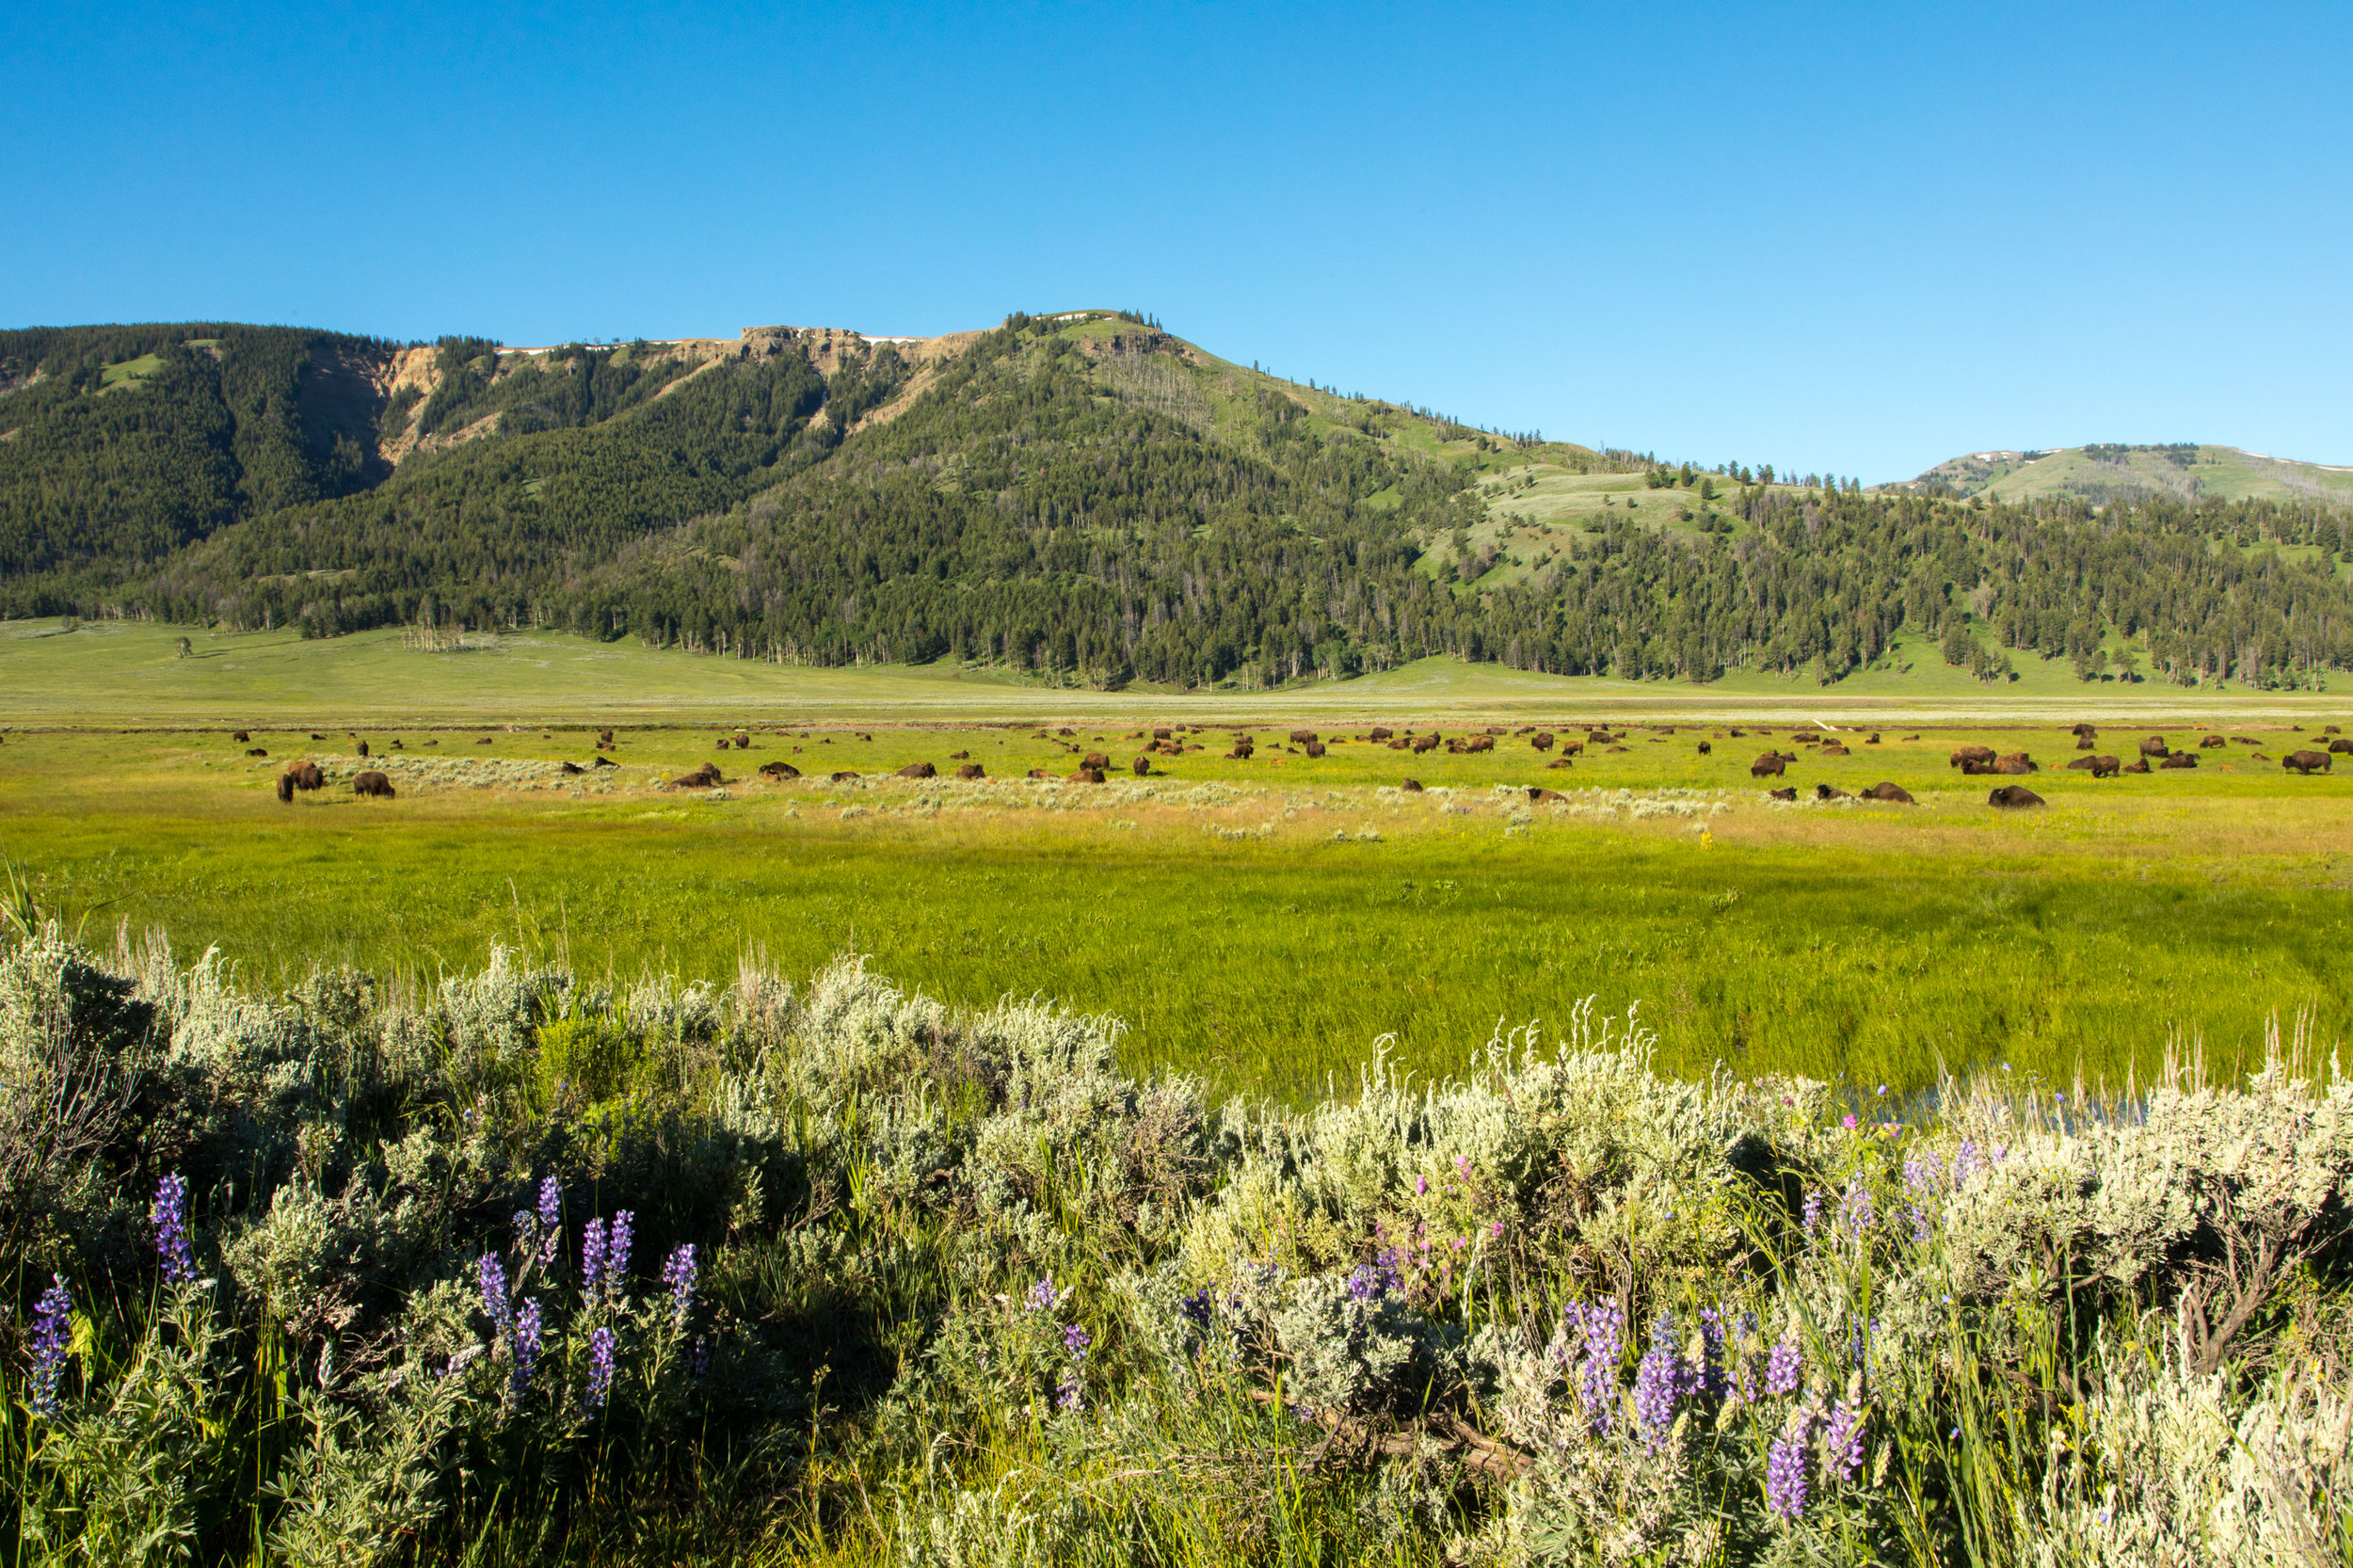 Lamar Valley, Yellowstone National Park, Image # 7609